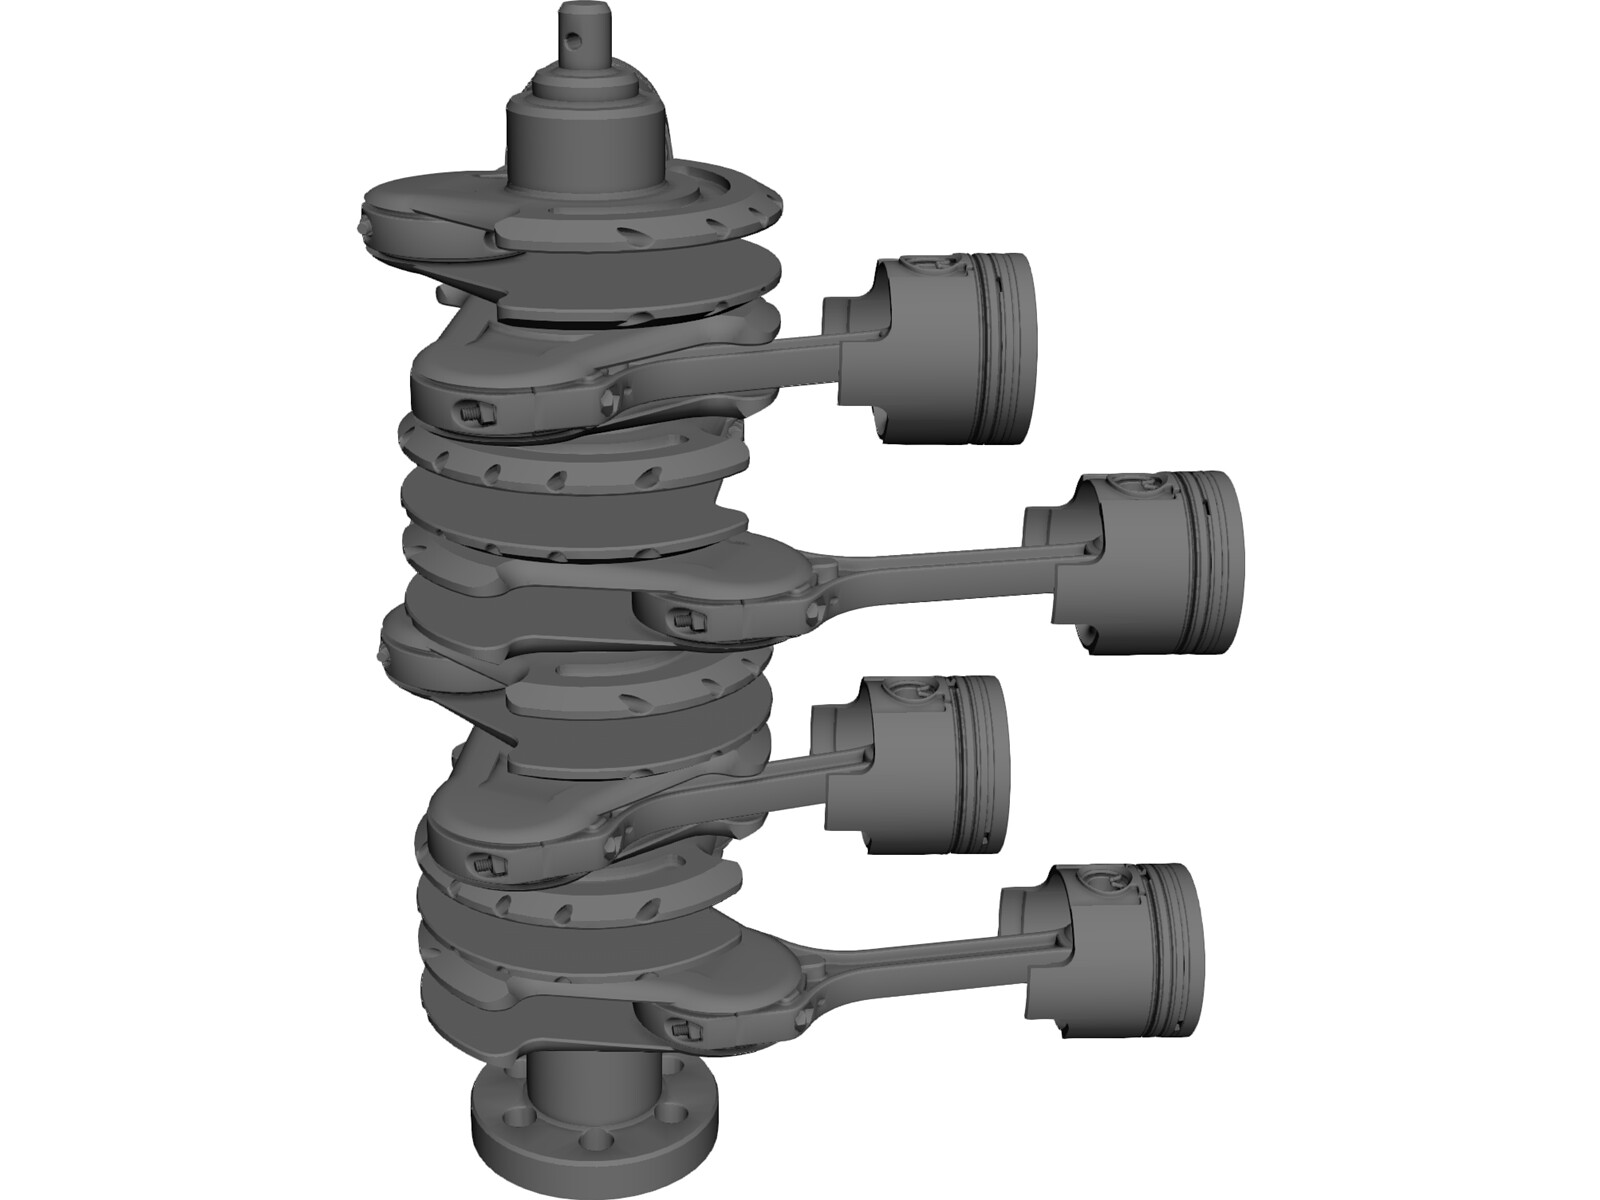 V8 Engine Crankshaft and Pistons [NURBS] 3D Model